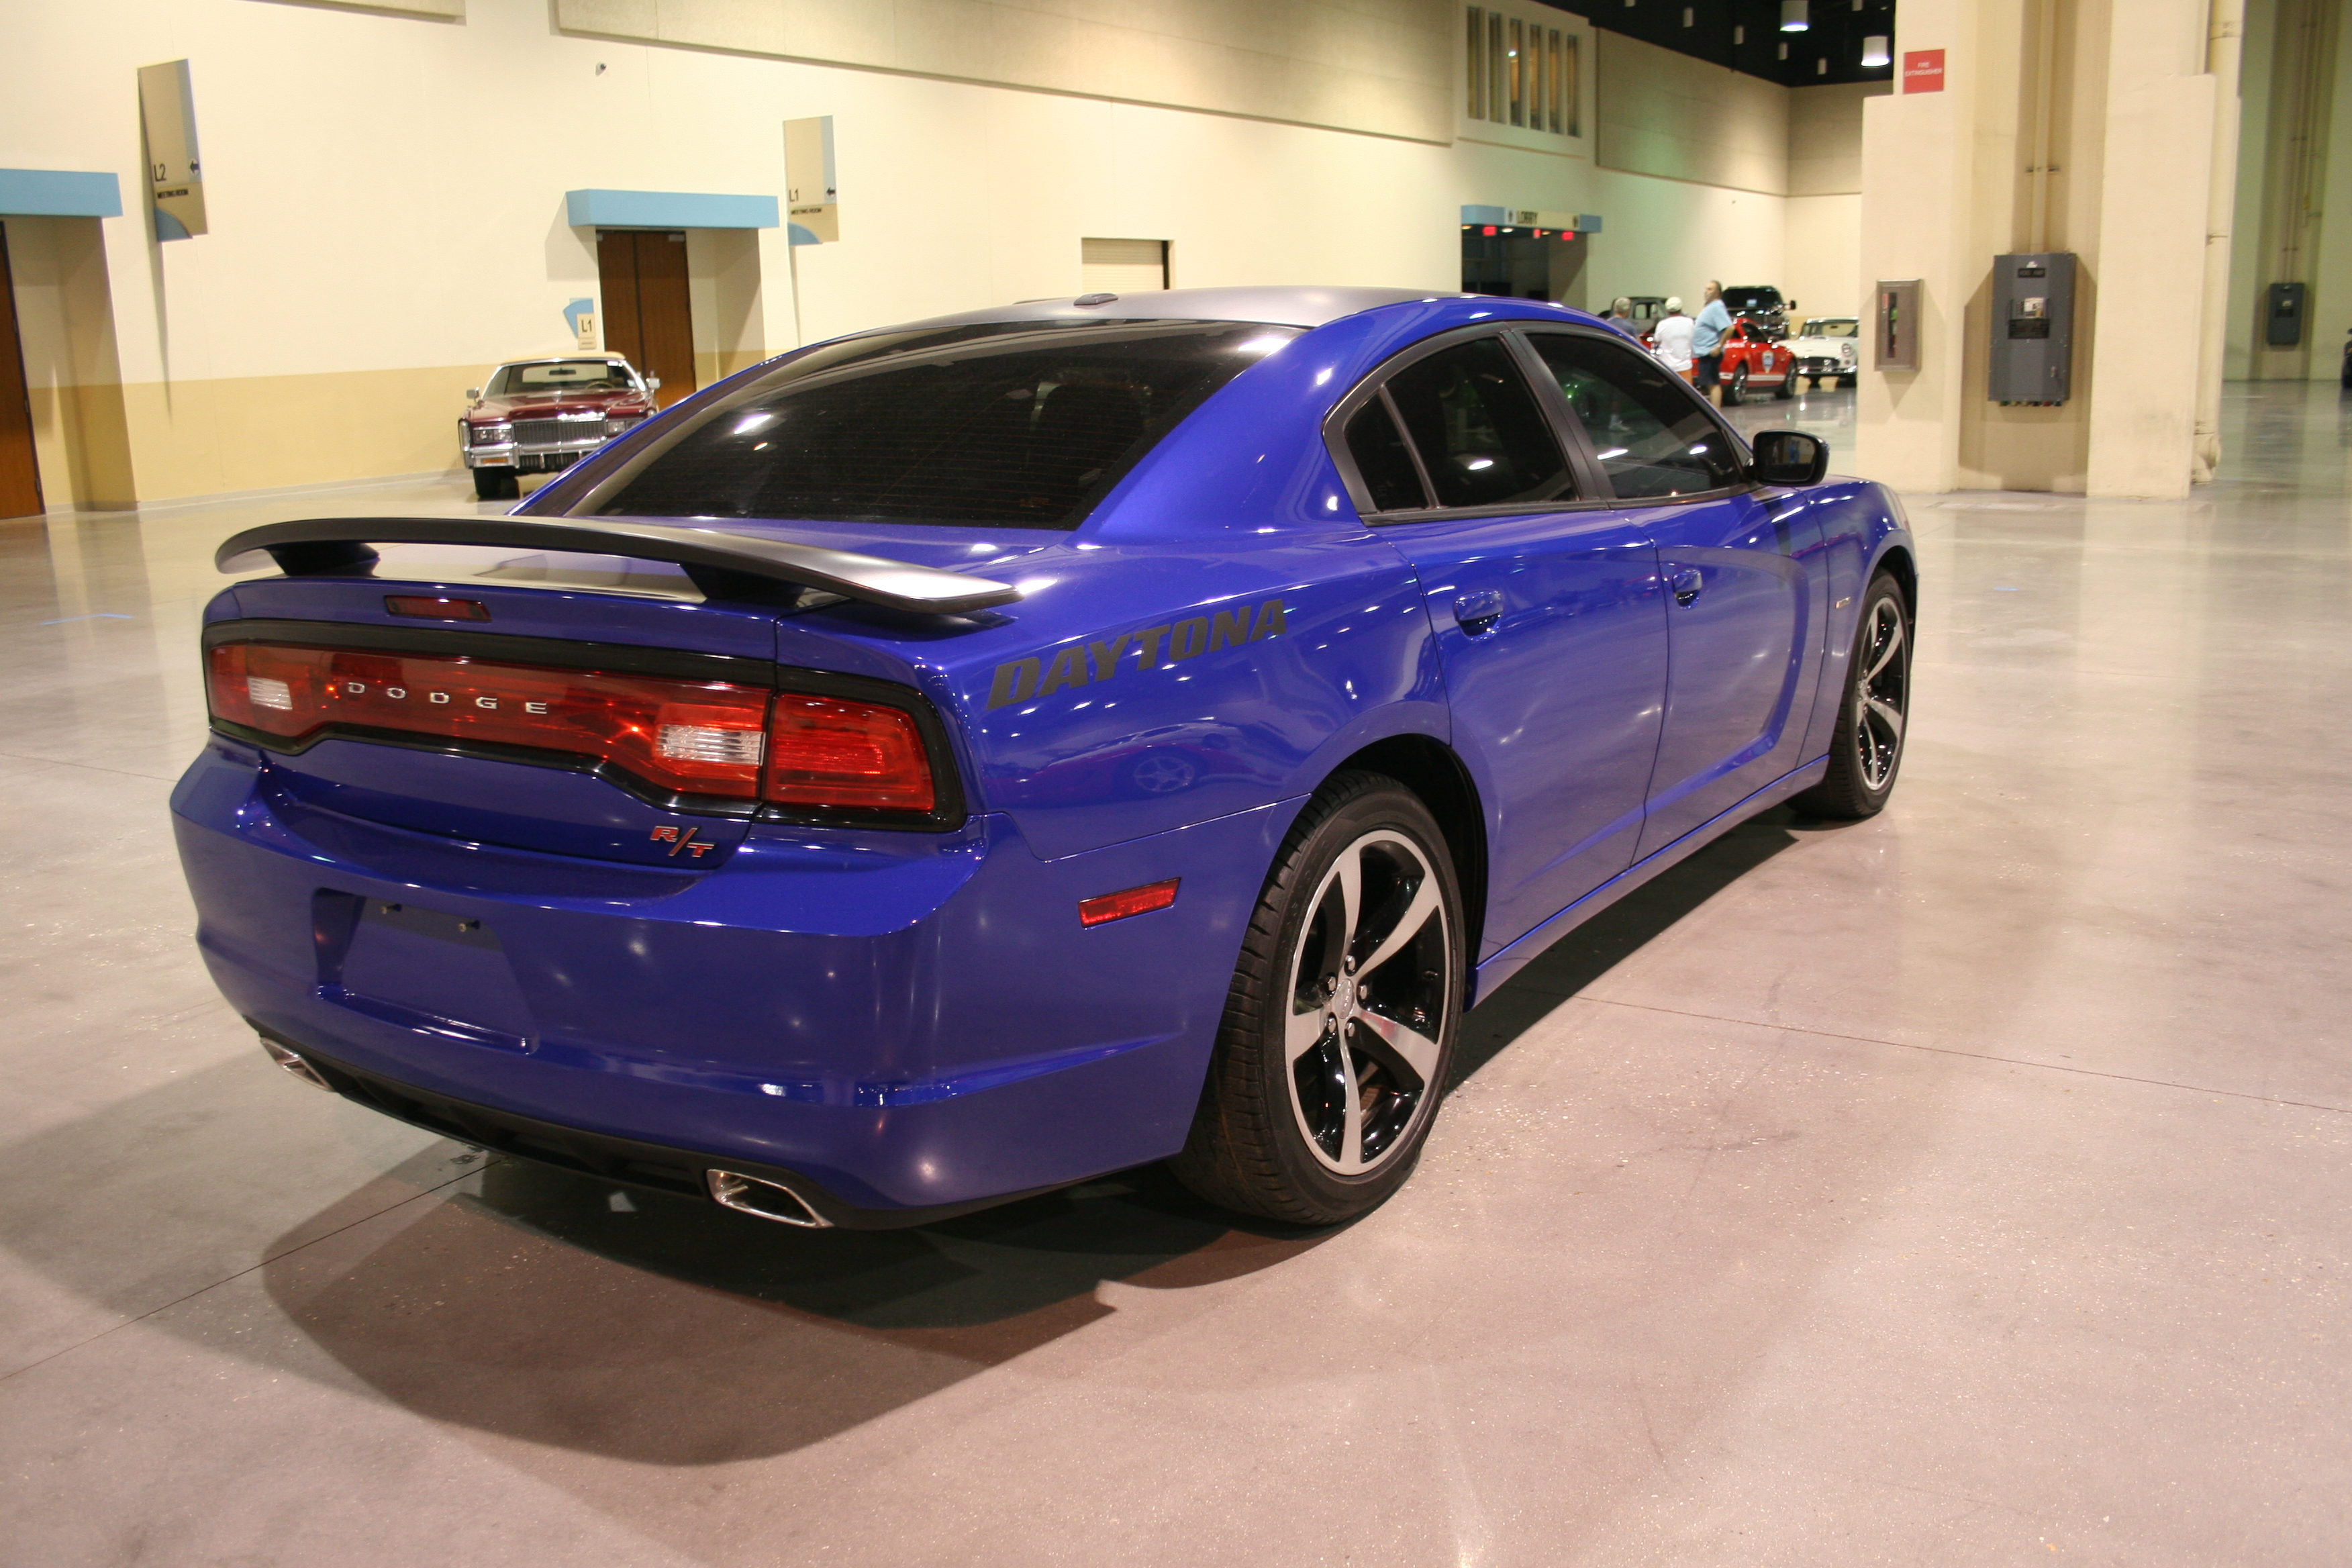 7th Image of a 2013 DODGE CHARGER R/T